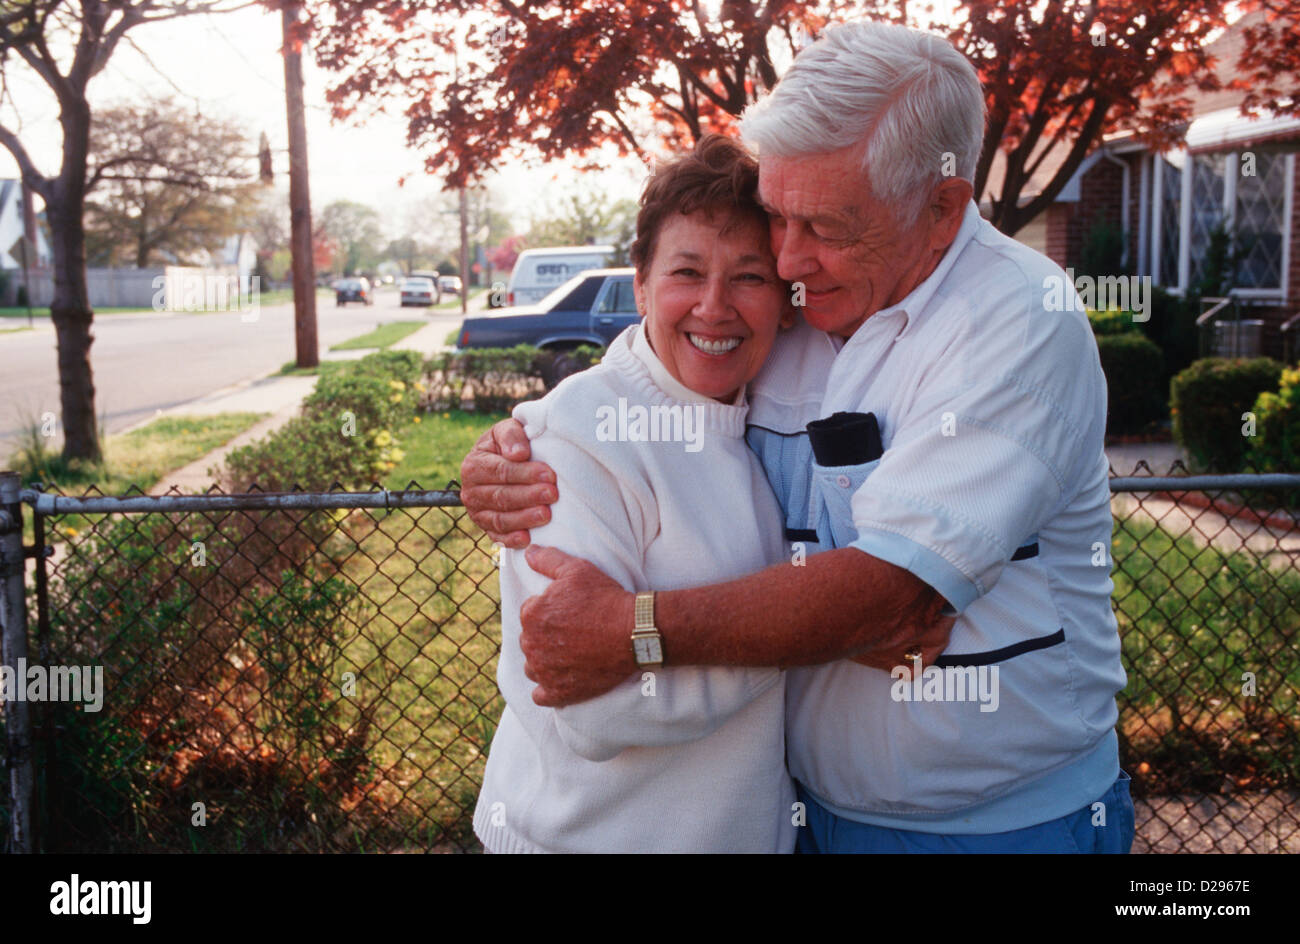 A Senior Couple In Their 70S - Stock Image